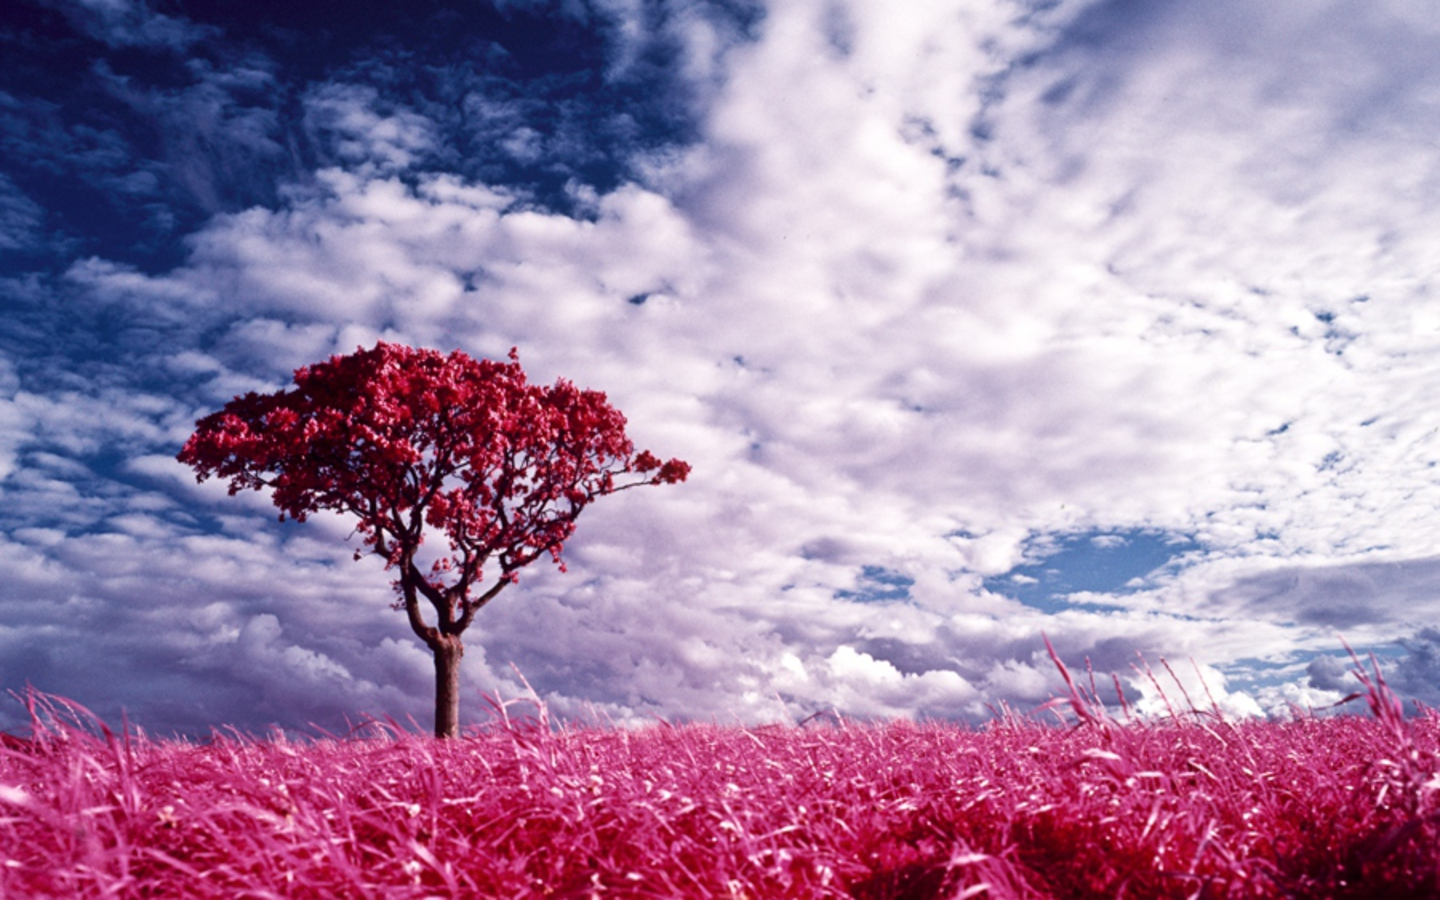 Nature Pink Land Desktop Wallpaper Pink Wallpaper 1440x900